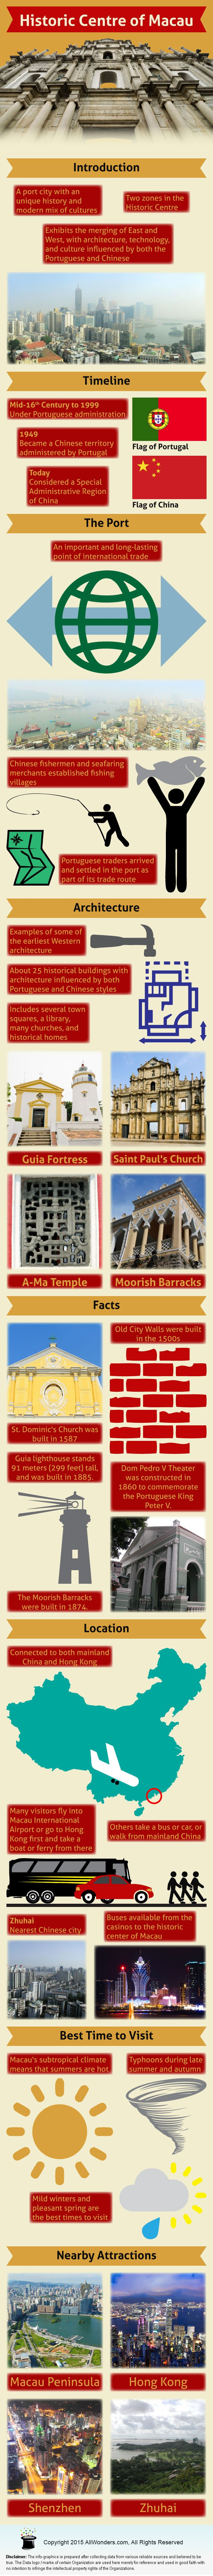 Historic Centre of Macau - Facts & Infographic